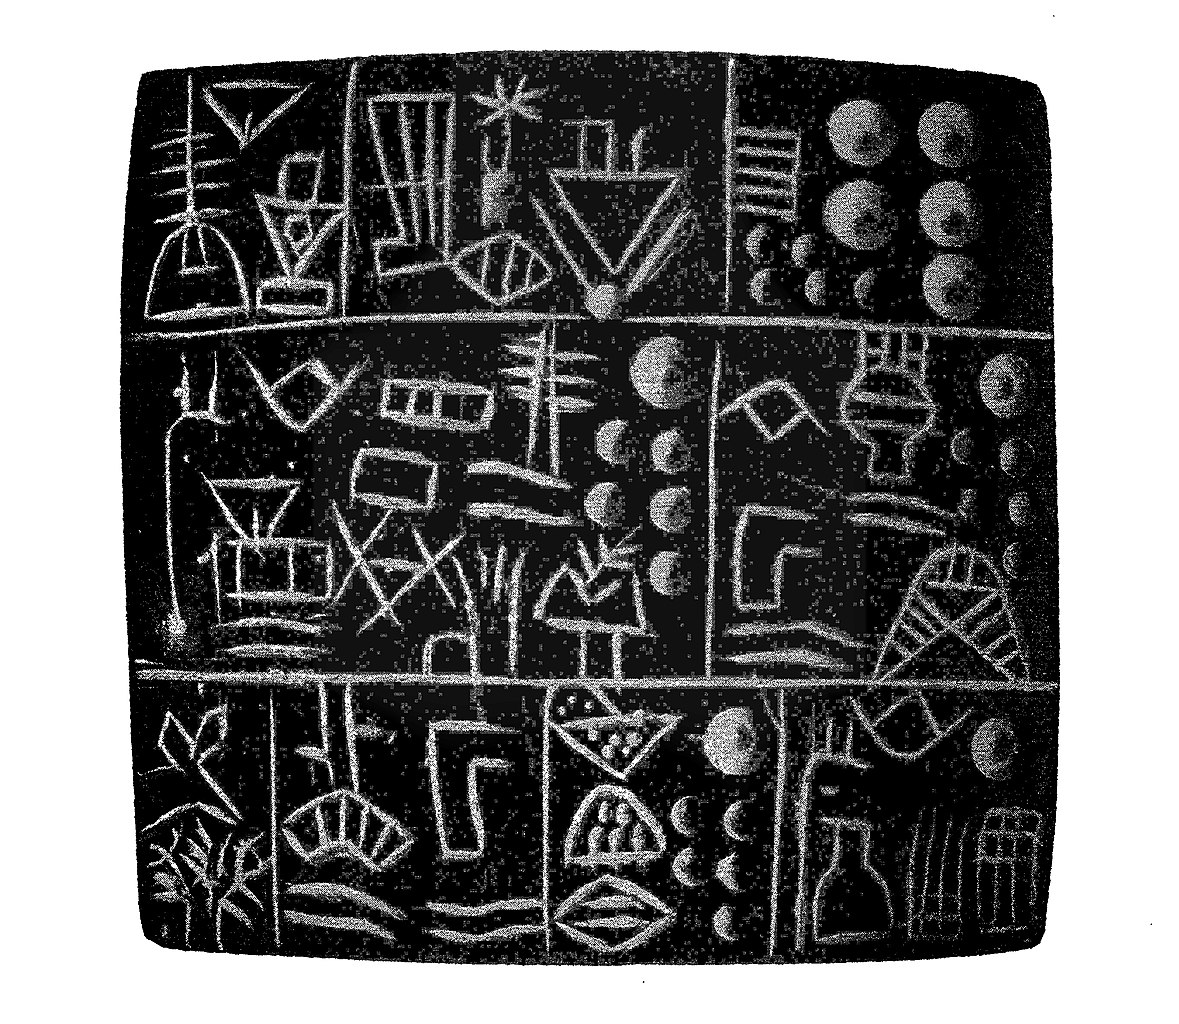 The Pokotia Monolith: did the Sumerians land in South America?-Archaic_cuneiform_tablet